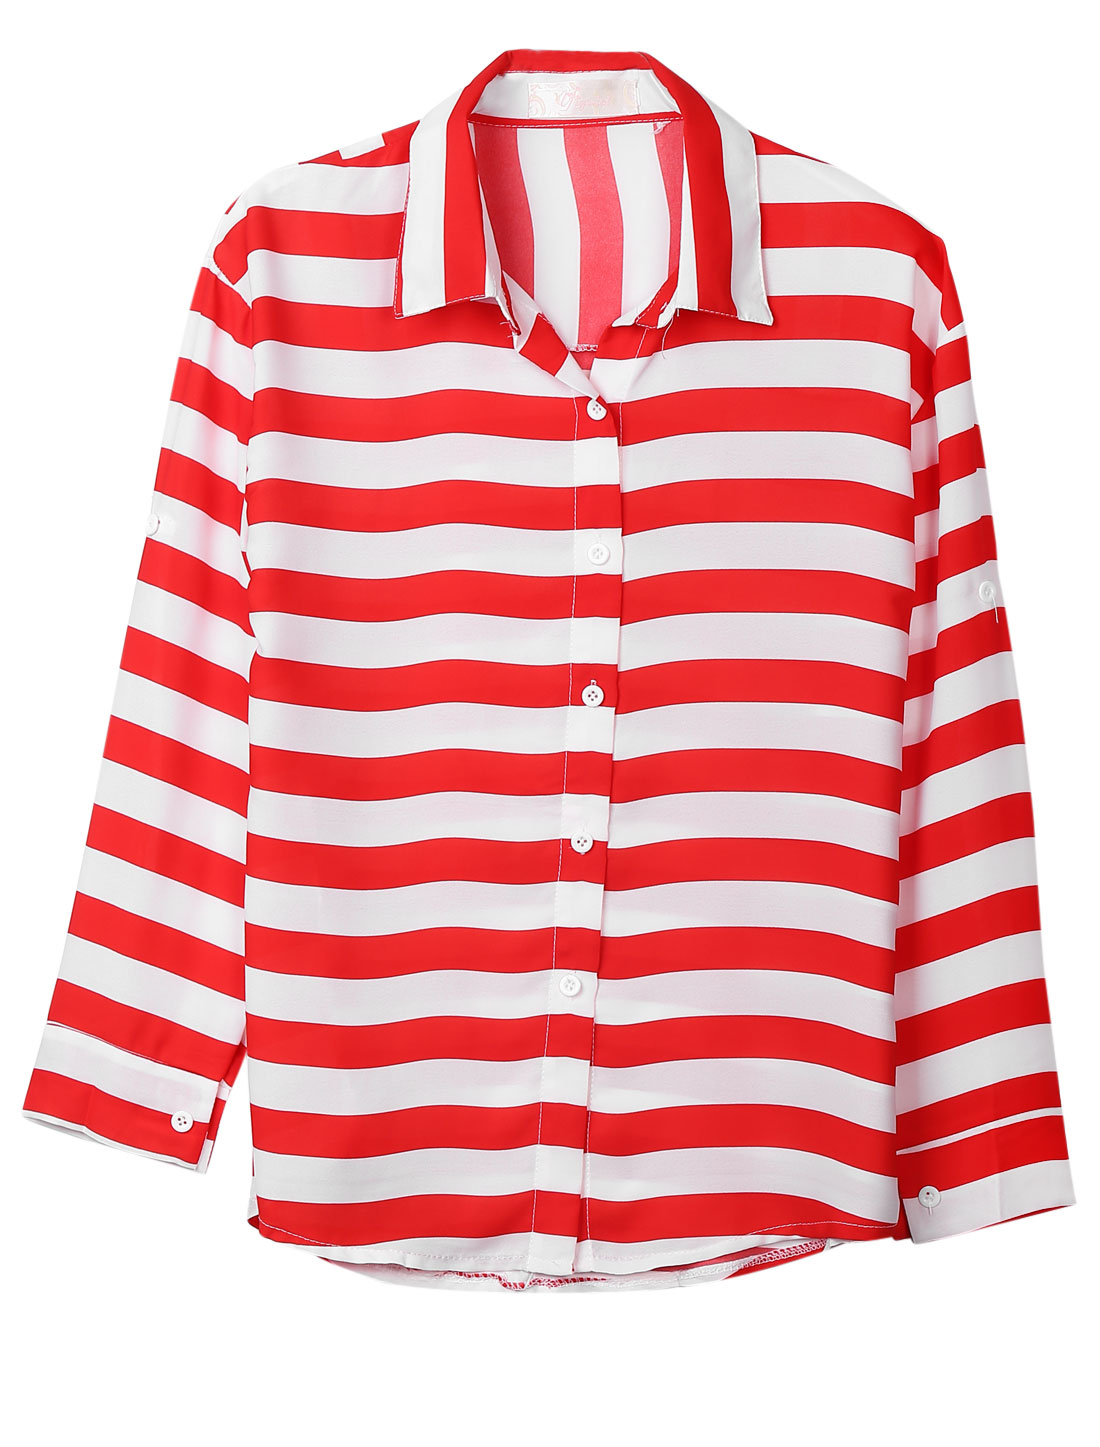 Ladies White Red Stripes Roll Up Cuffs Button Down Leisure Blouse S